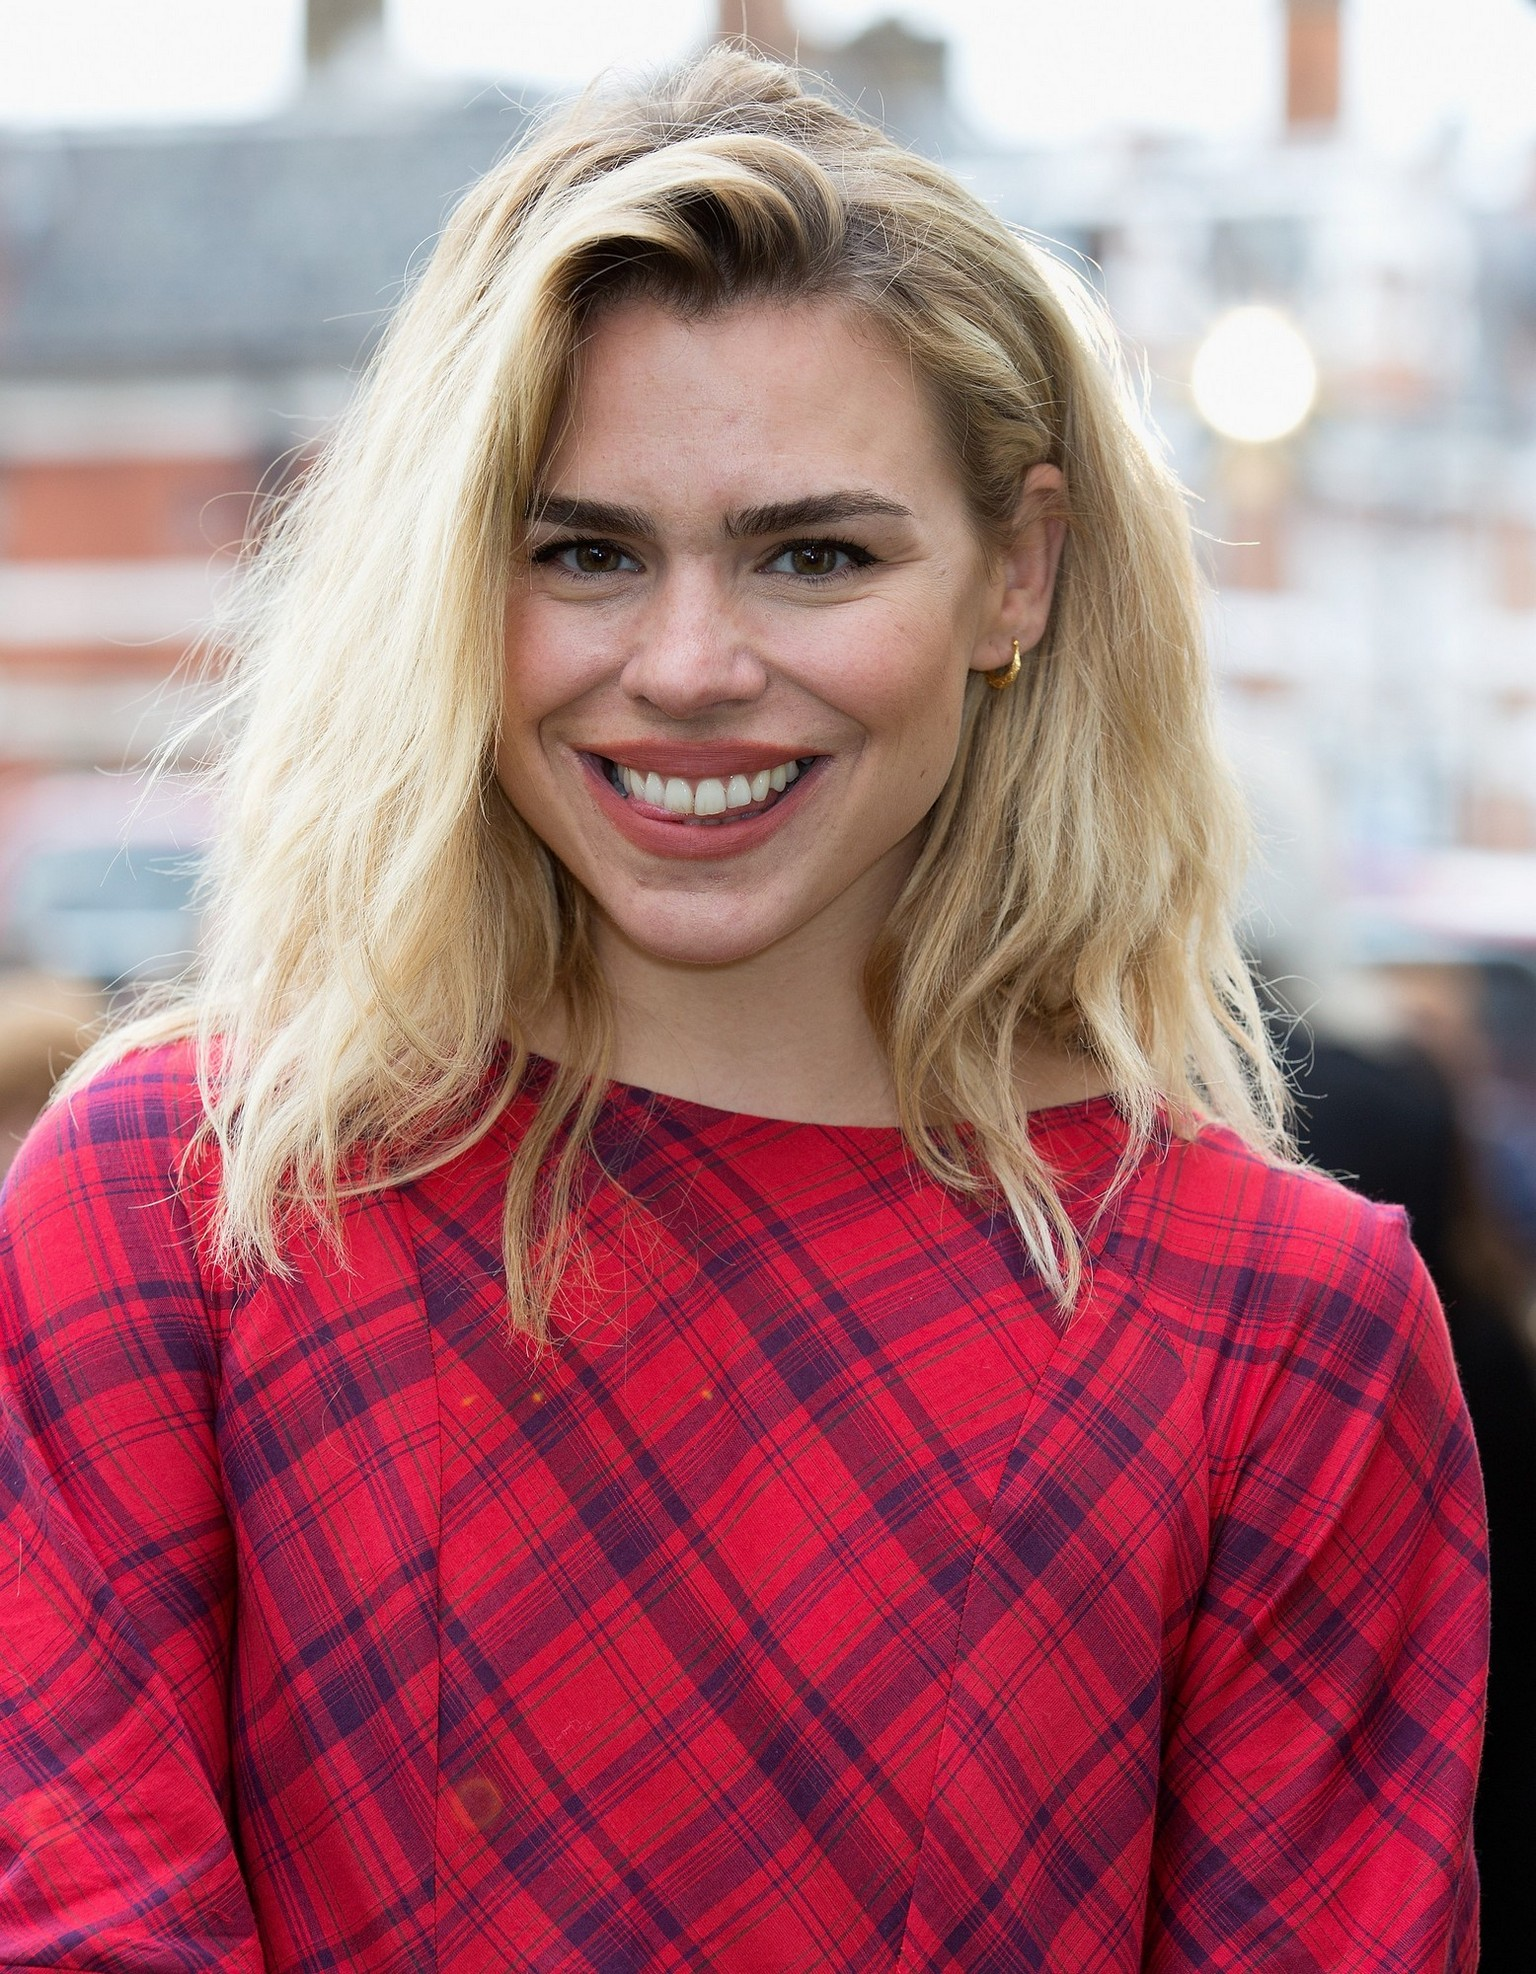 Billie Piper 2 500 HQ-UHQ Pics